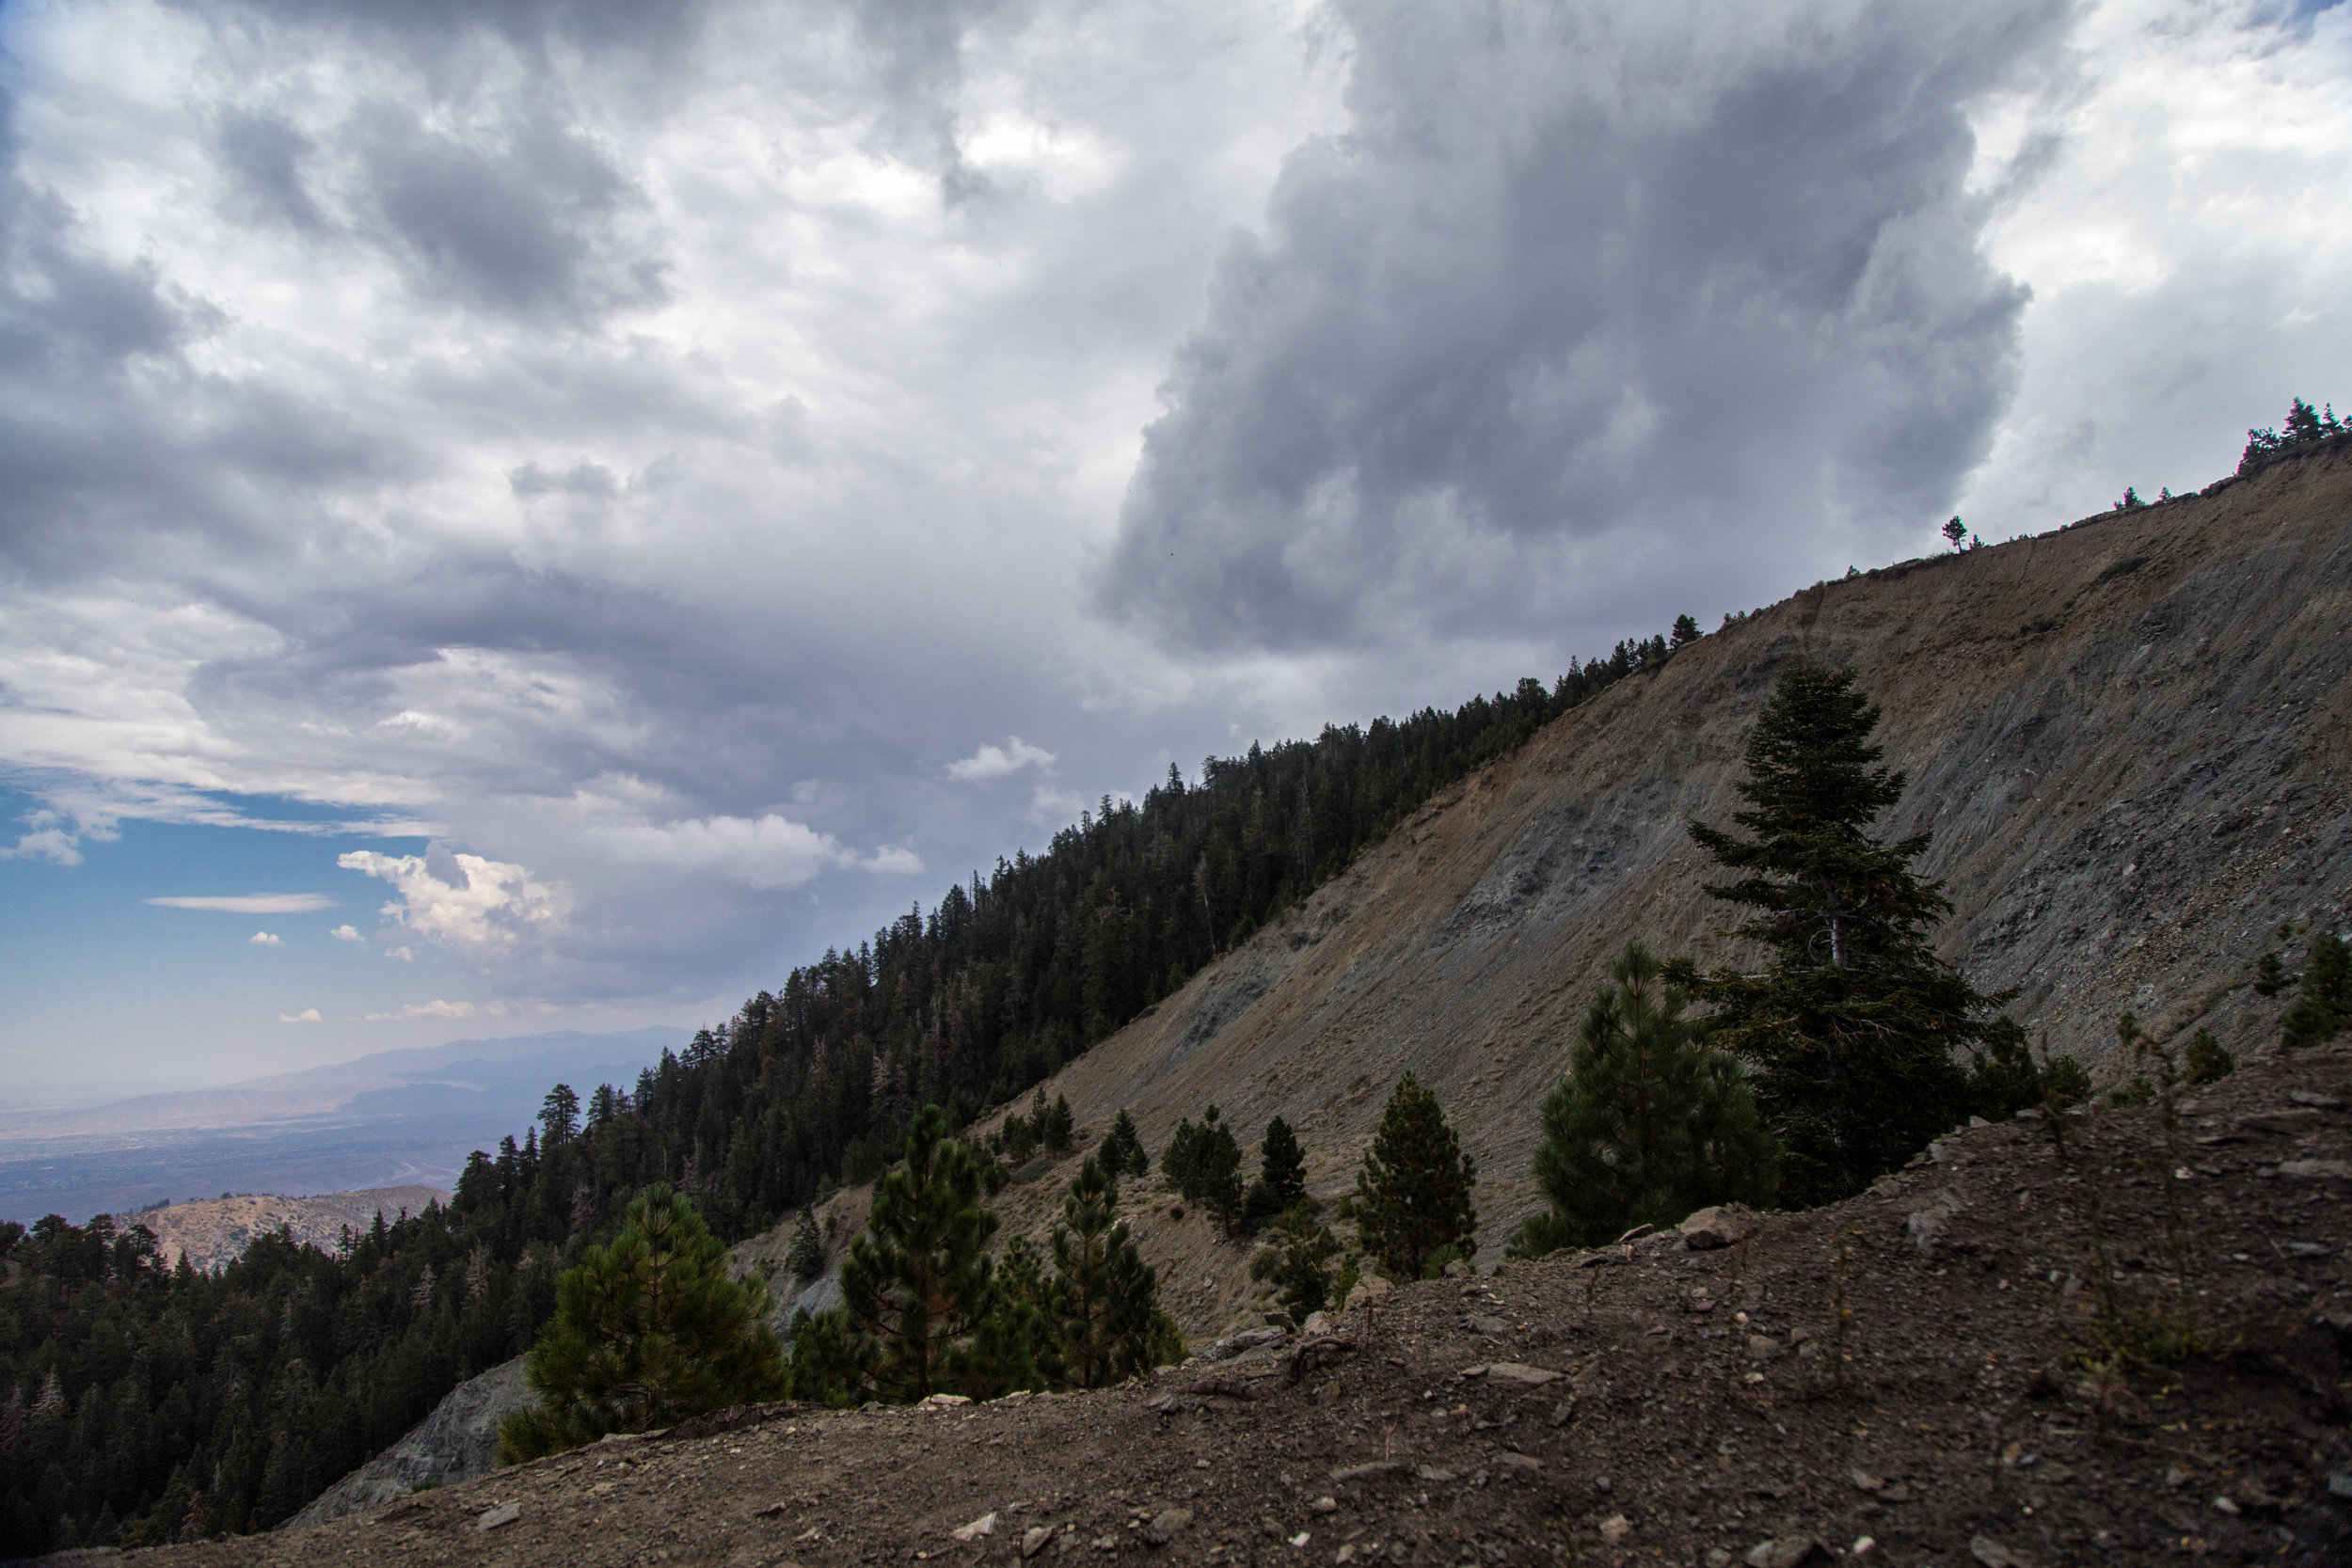 Storm clouds were starting to roll in. Time to head back down.